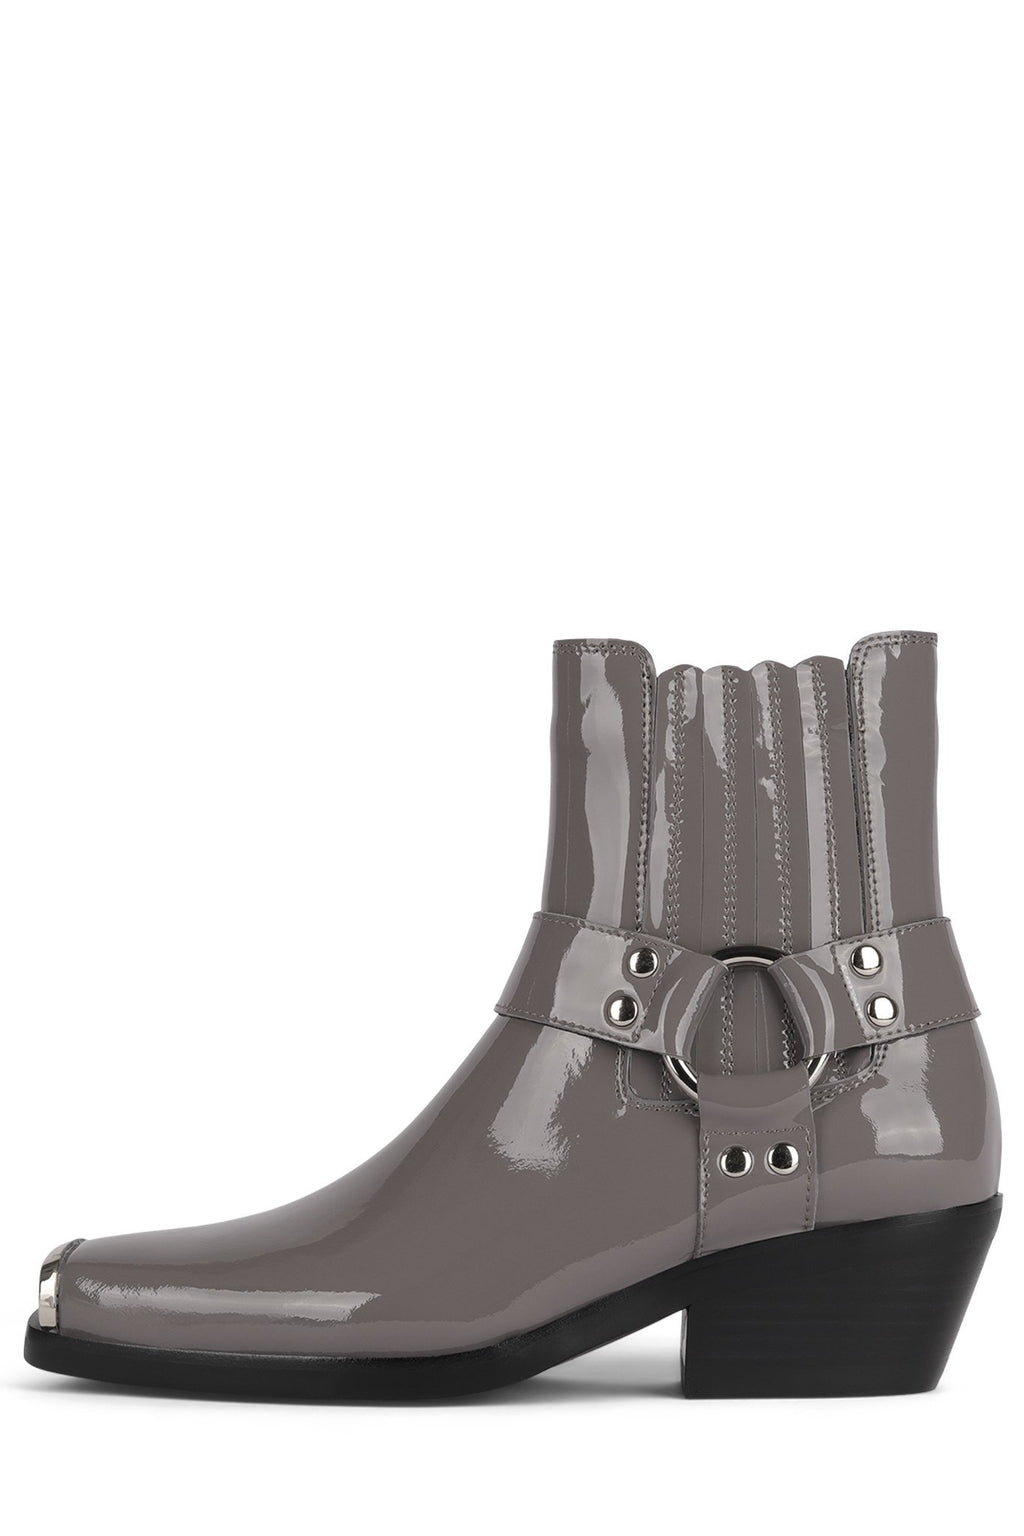 POKER-BK Boot YYH Grey Patent Silver 6